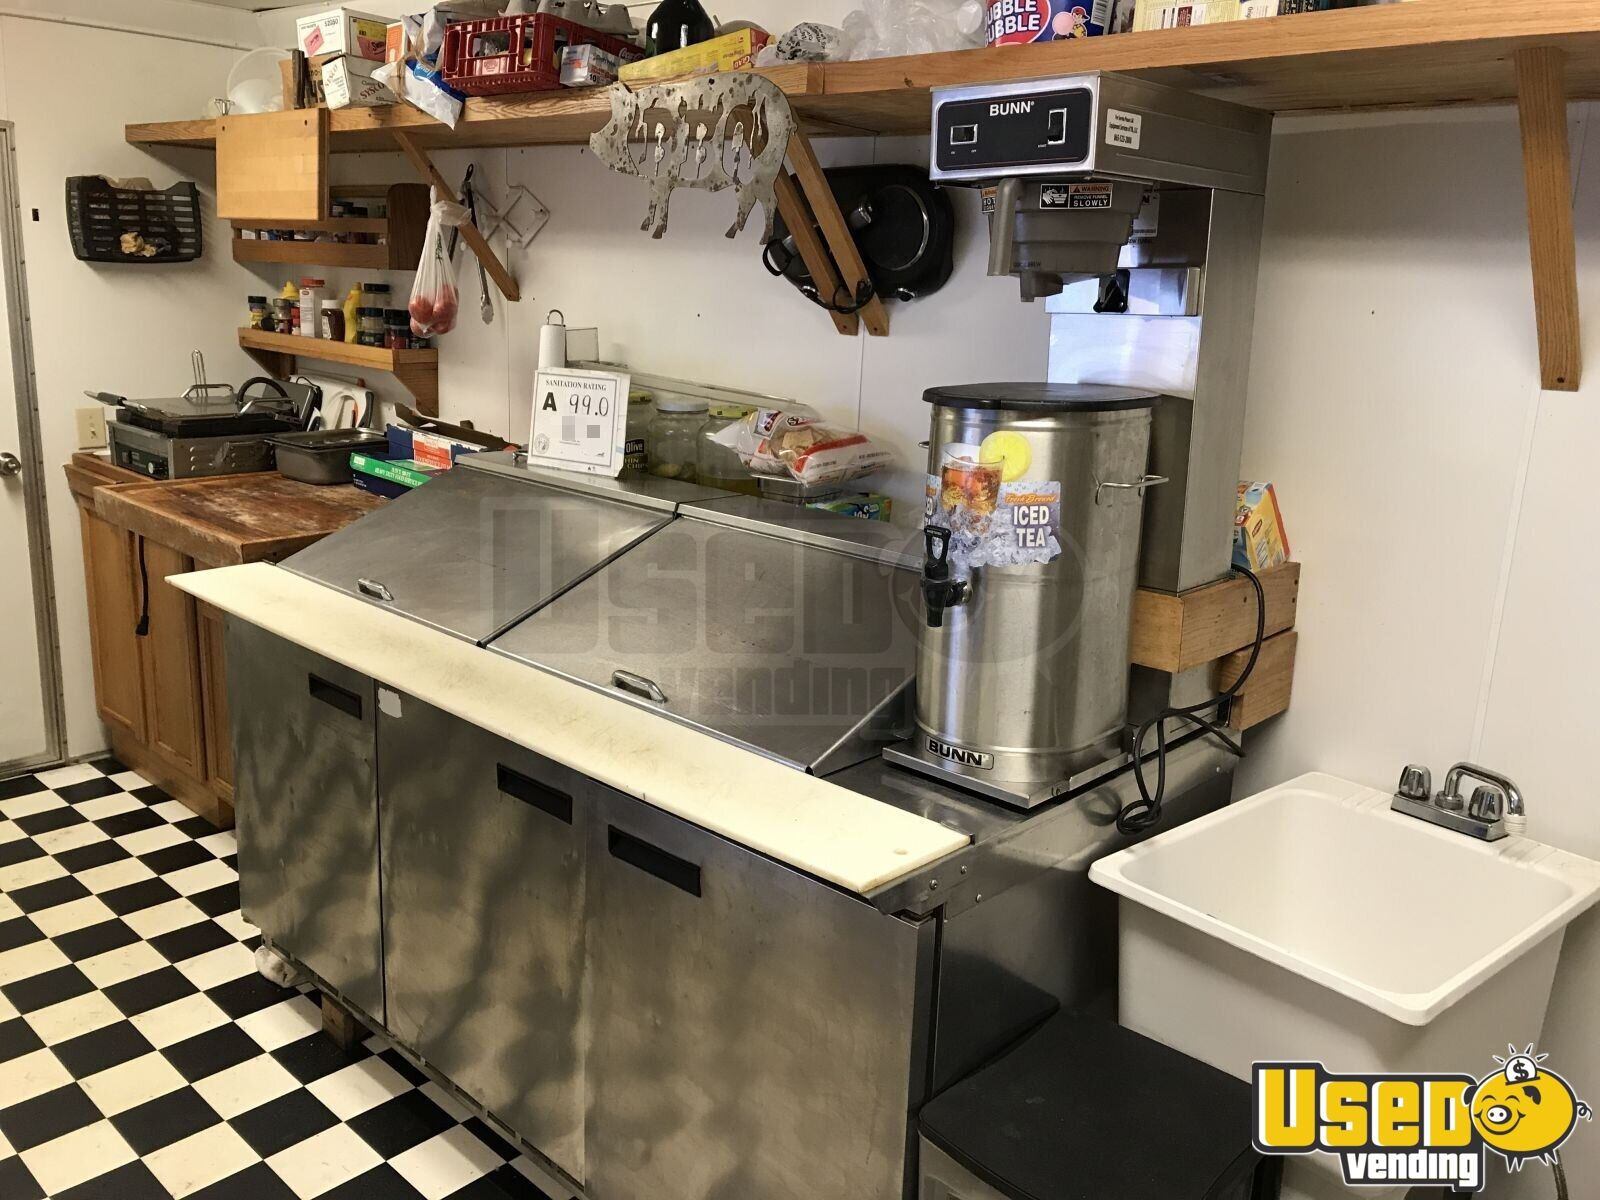 2013 Colonial Custom Built Barbecue Food Trailer Diamond Plated Aluminum Flooring North Carolina for Sale - 8